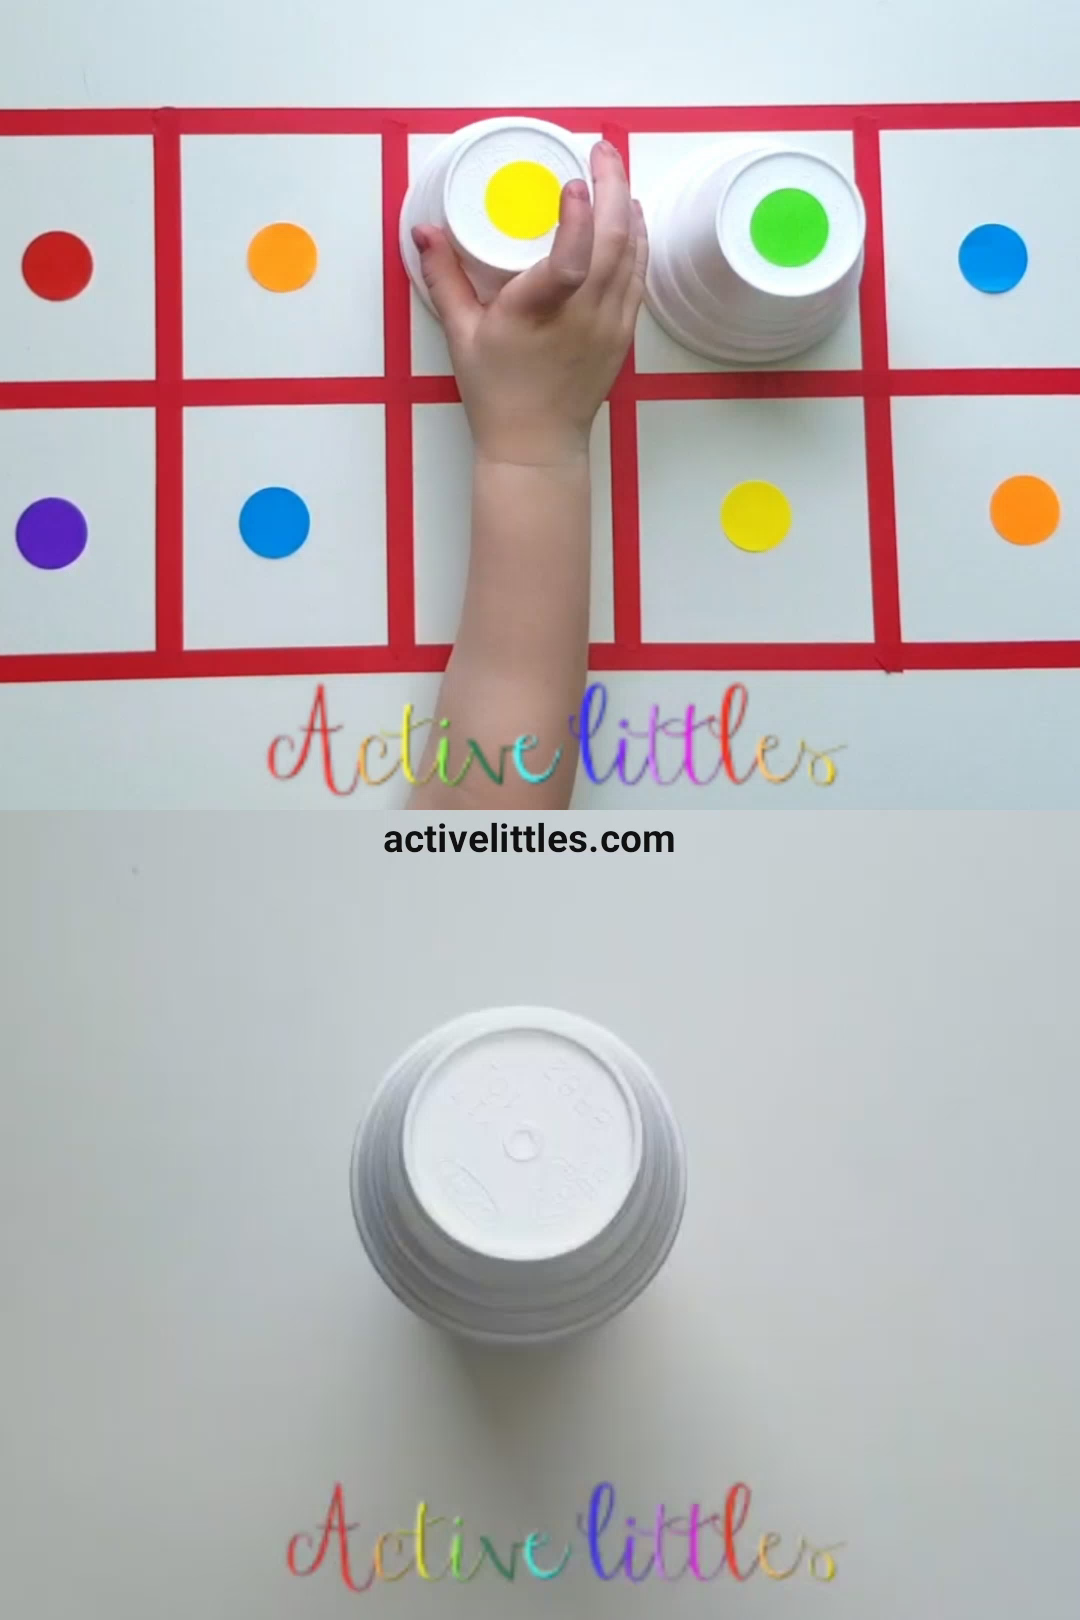 Diy Simple Creative Educational Learning Games And Crafts For